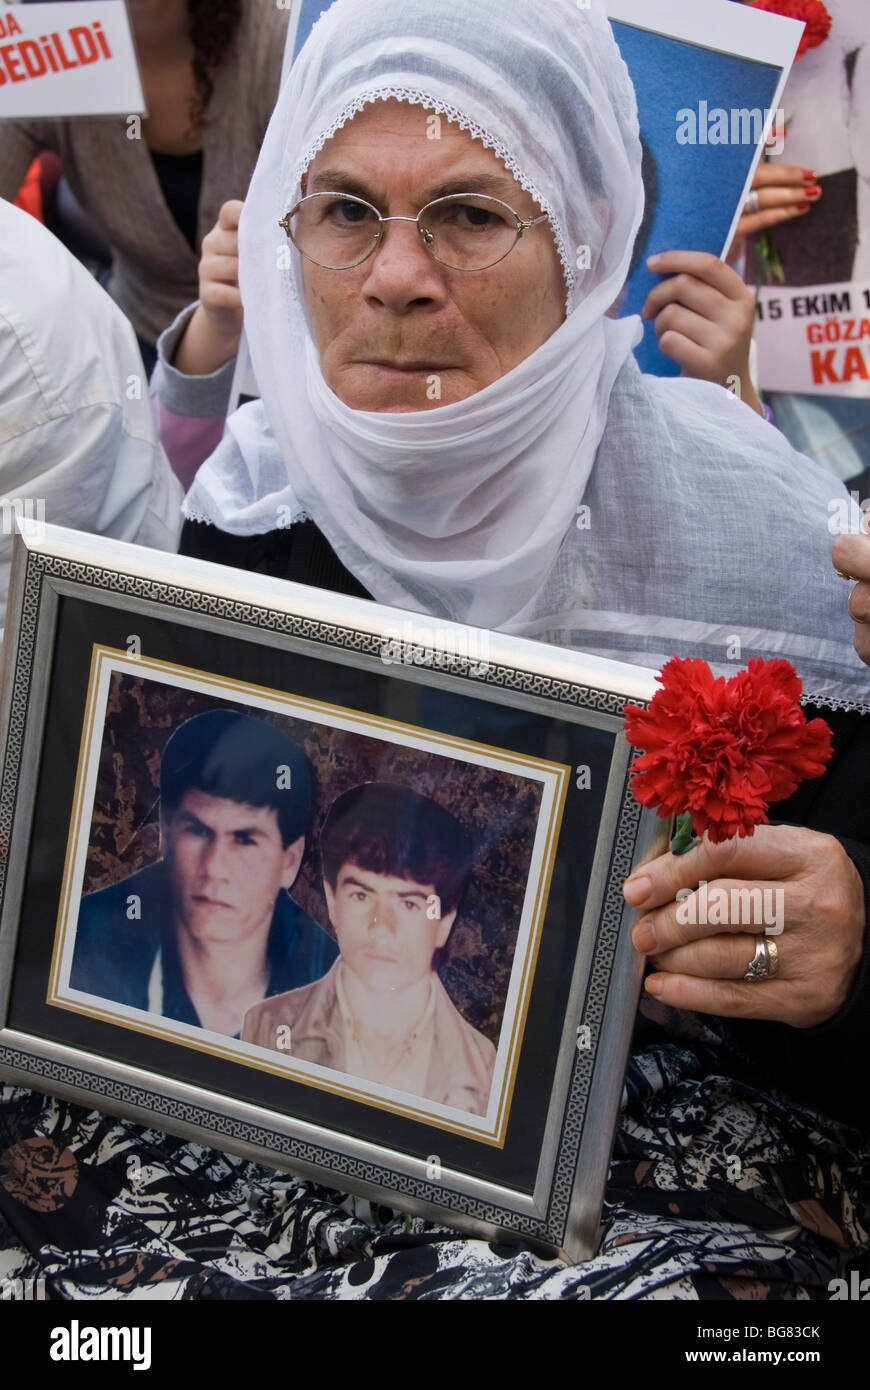 KURDISH WOMAN HOLDING A PICTURE OF HER DISAPPEARED SON WHILE UNDER POLICE INTERROGATION AND CARNATION - Stock Image